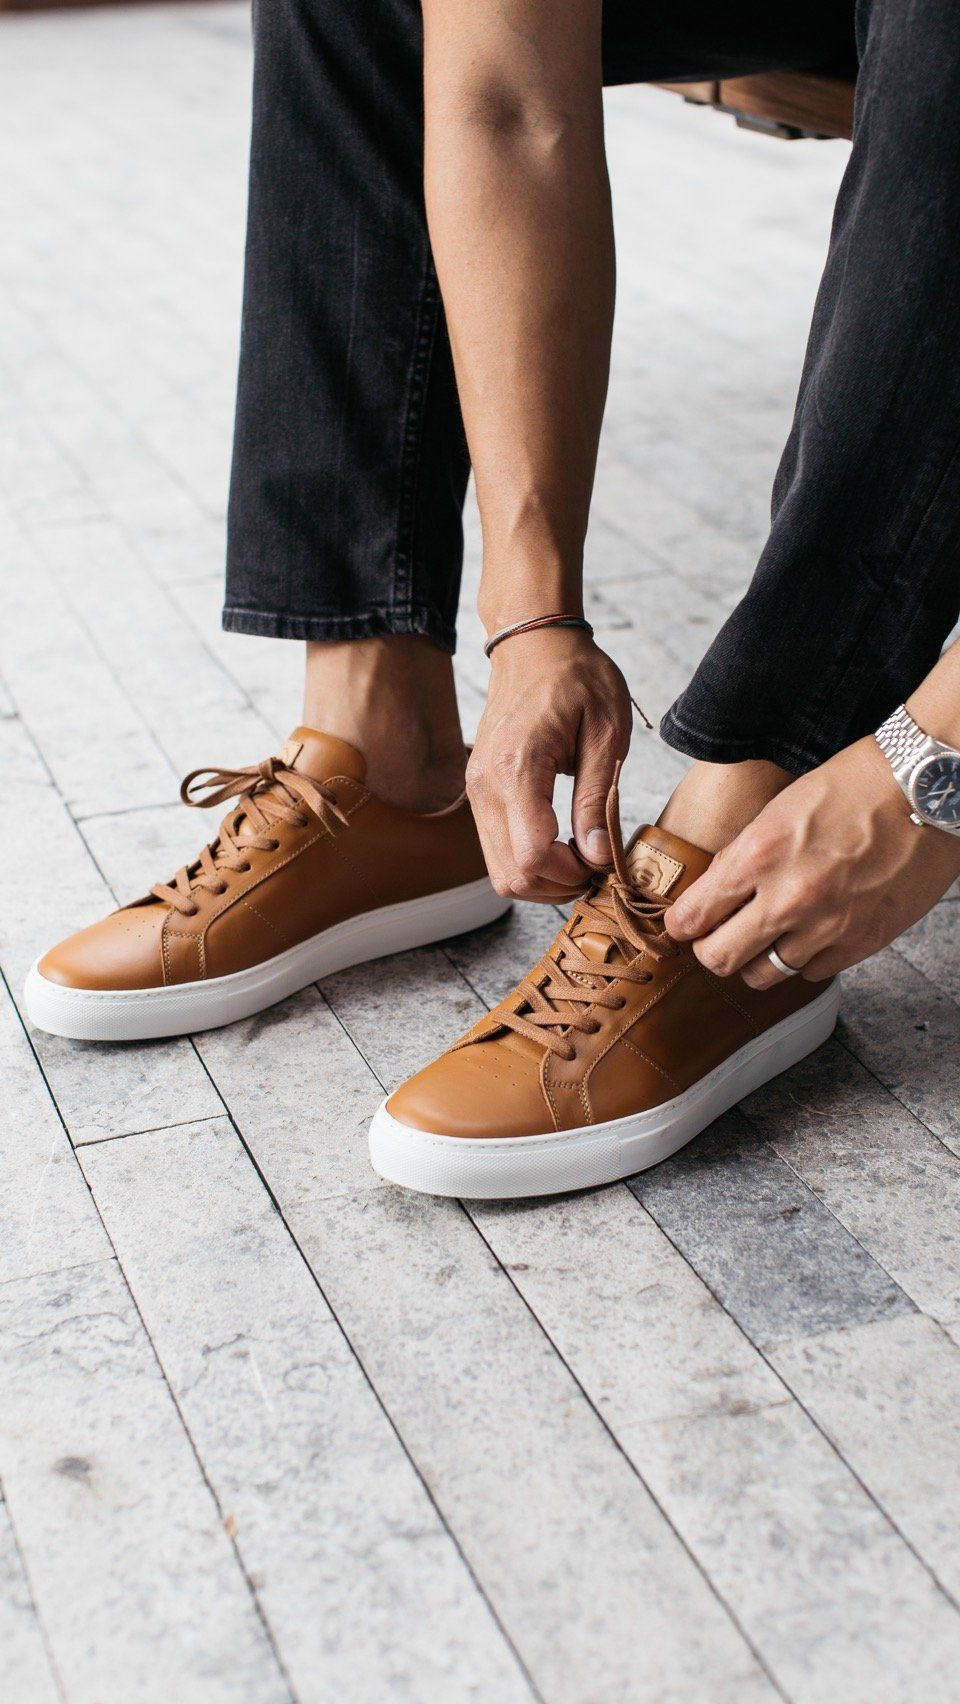 Sneakers outfit men, Loafers men outfit